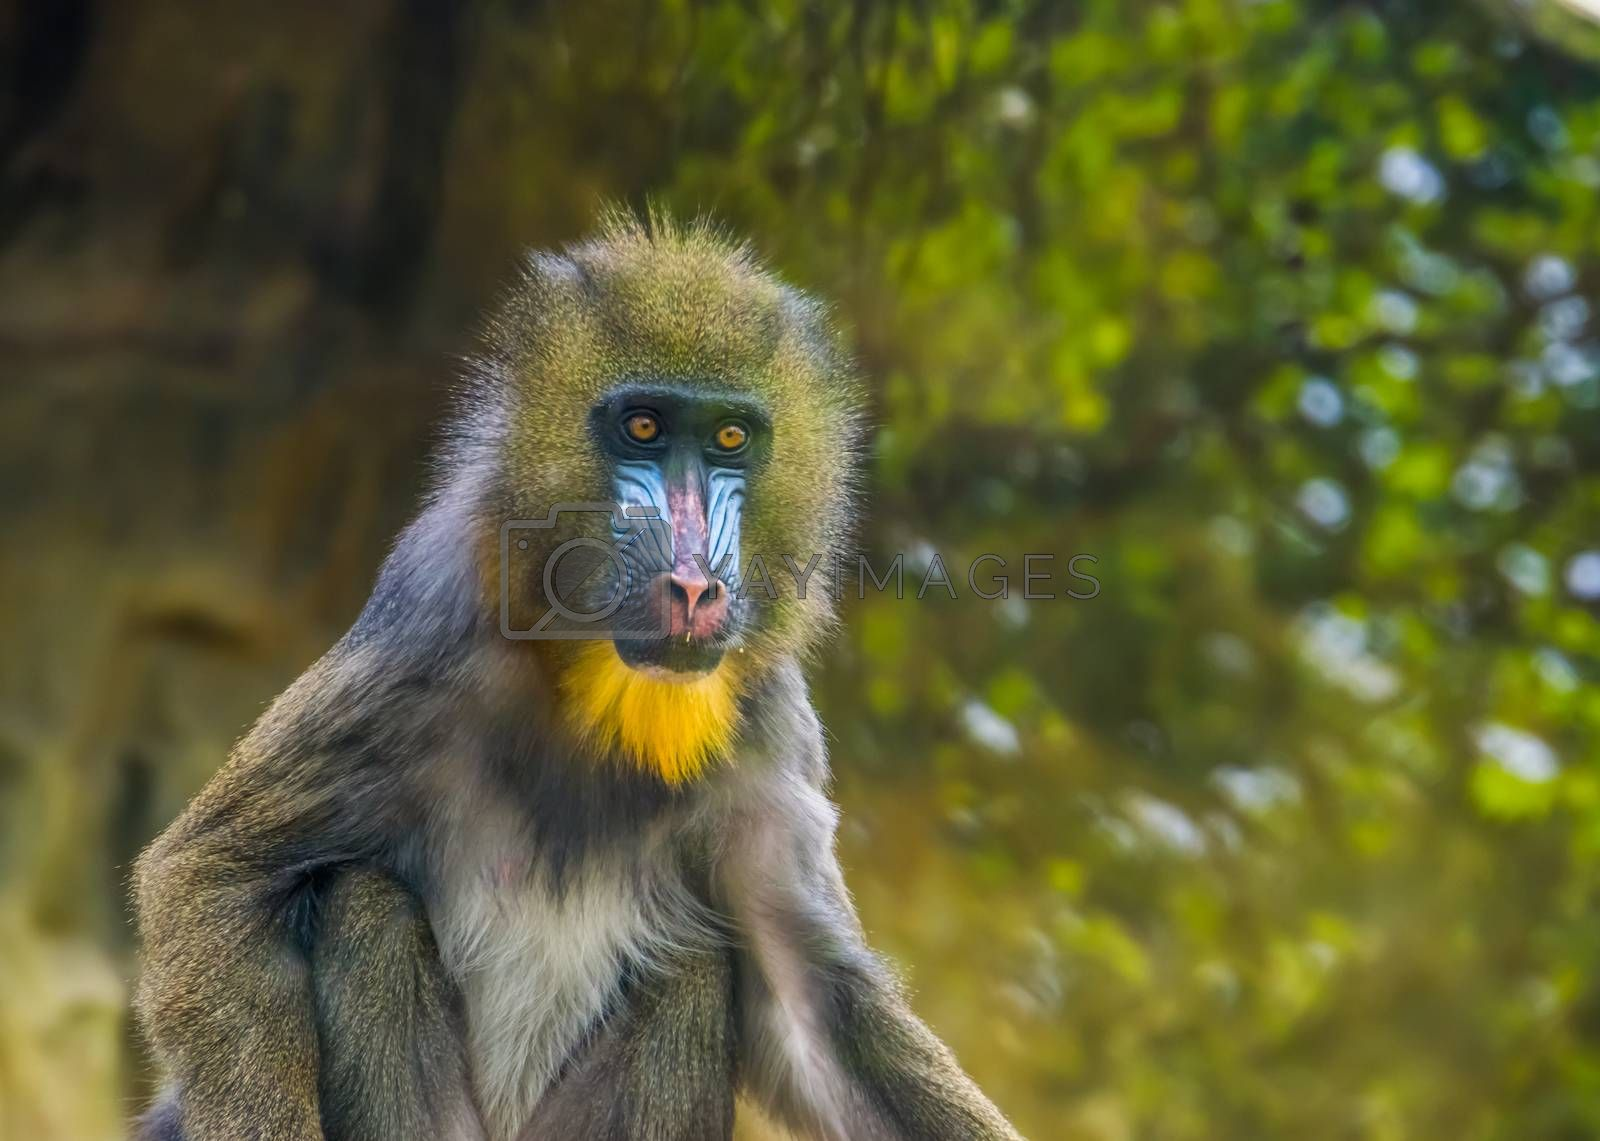 closeup portrait of a mandrill monkey, vulnerable animal specie, tropical primate from cameroon, africa